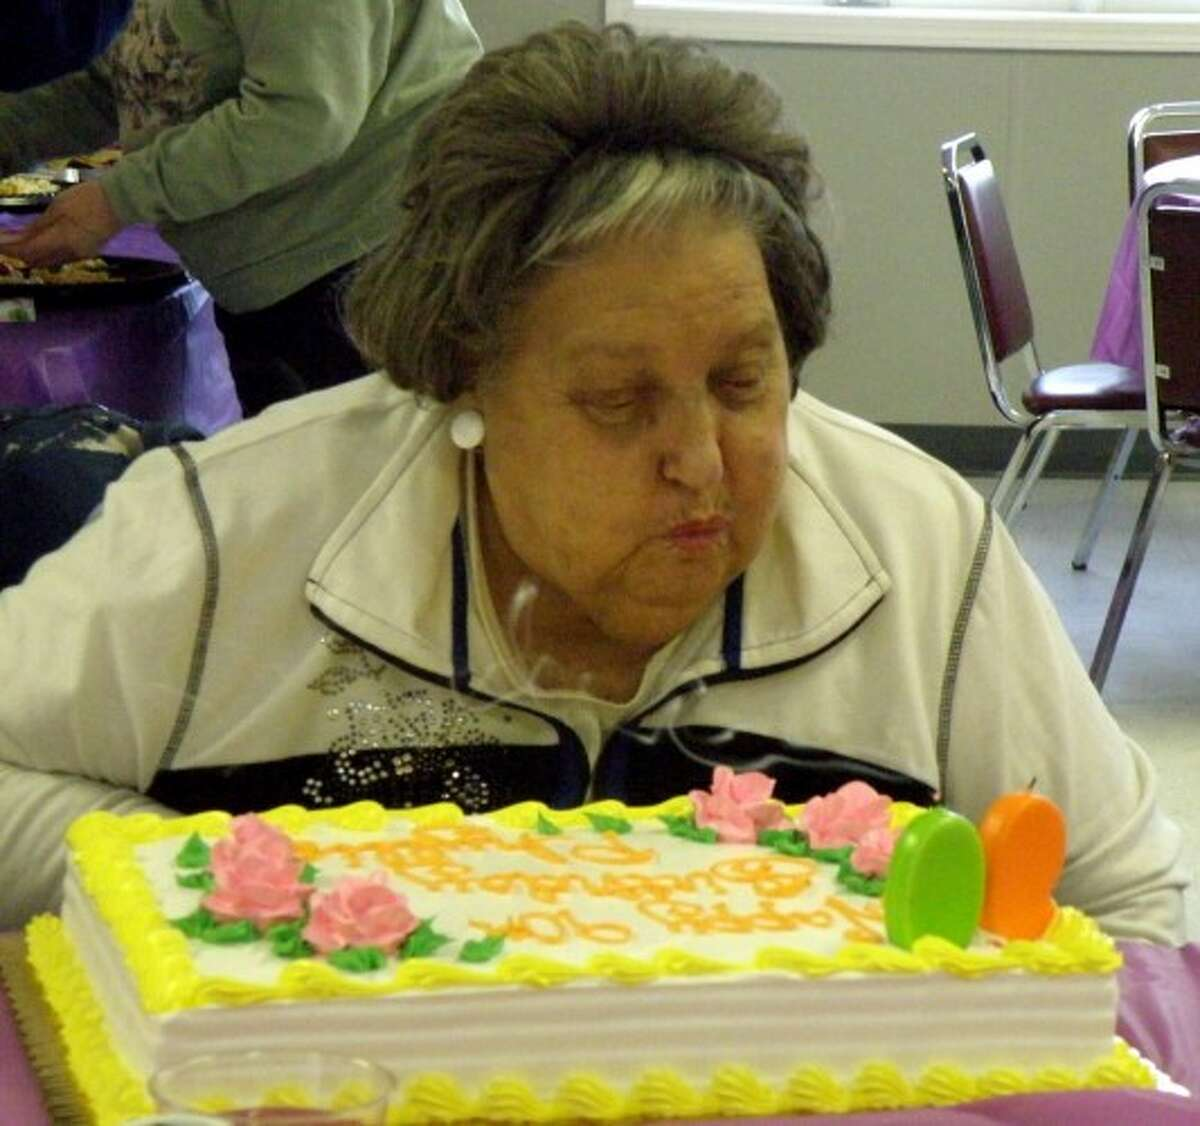 Phyllis Sheras blows out the candles on her birthday cake as she celebrates her 90th birthday at the Manistee Senior Center. (Jeanne Barber/Courtesy photo)